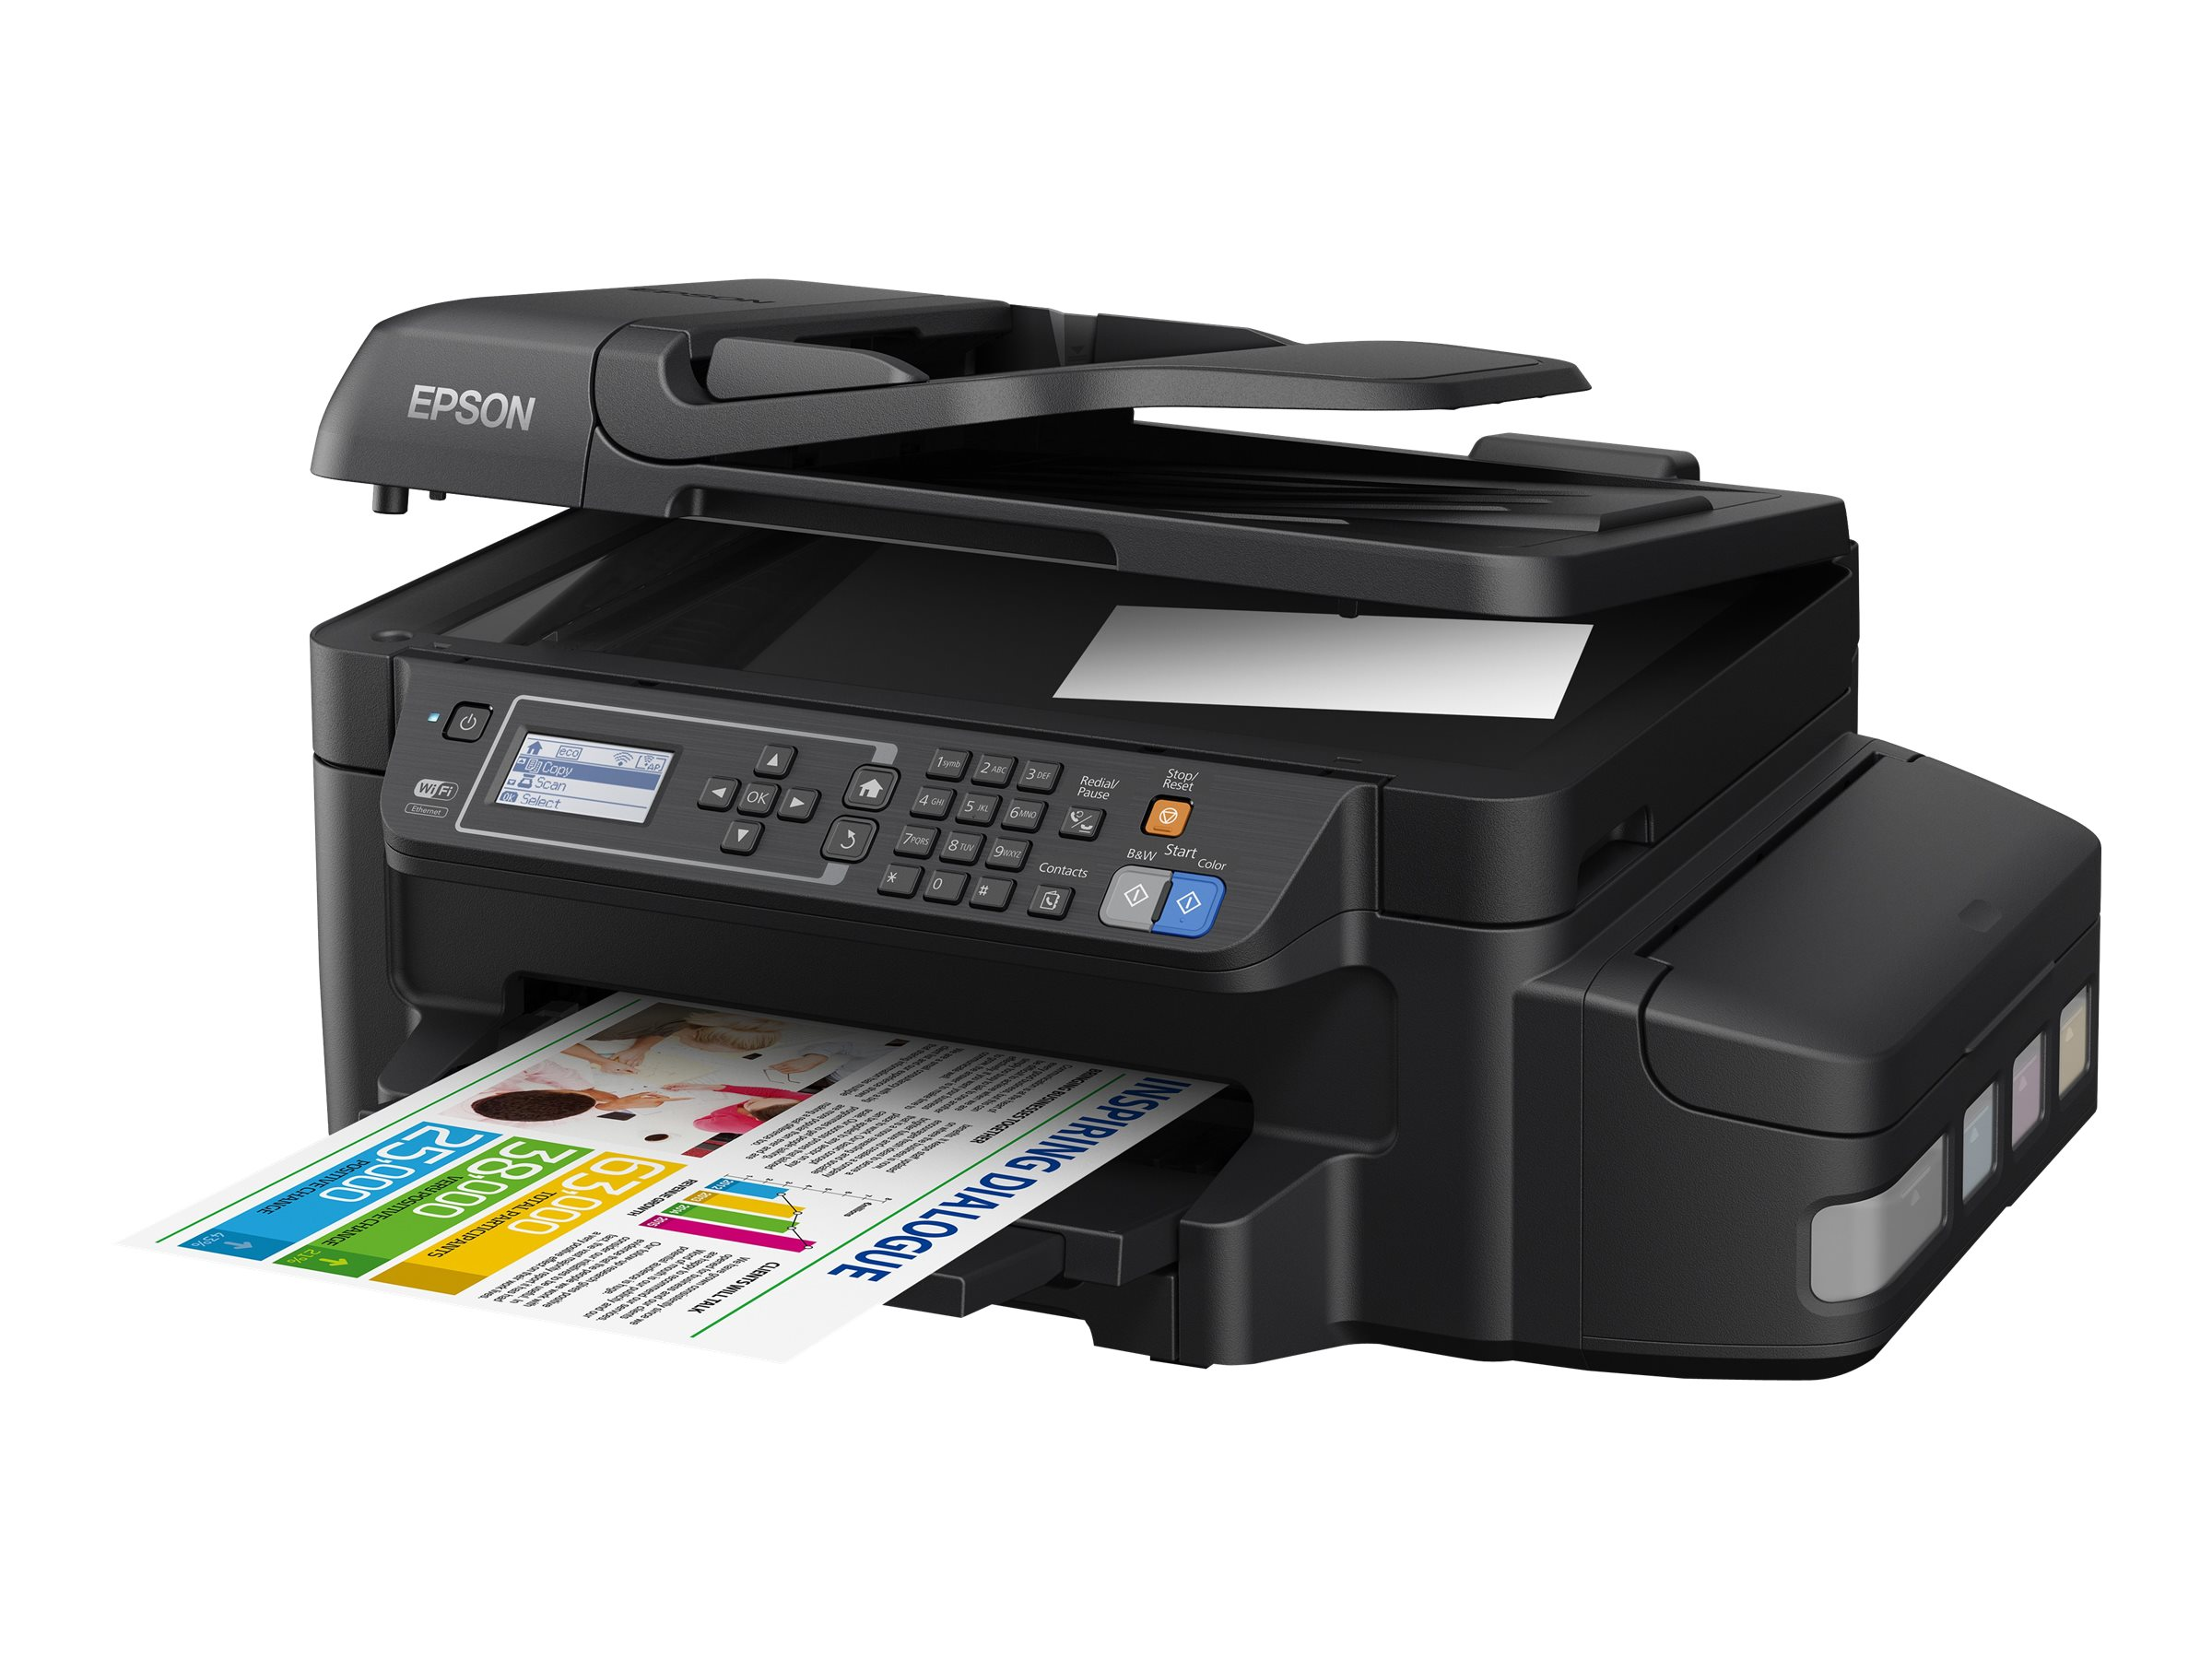 Epson WorkForce ET-4550 EcoTank All-in-One Printer, C11CE71201, 30180954, MultiFunction - Ink-Jet